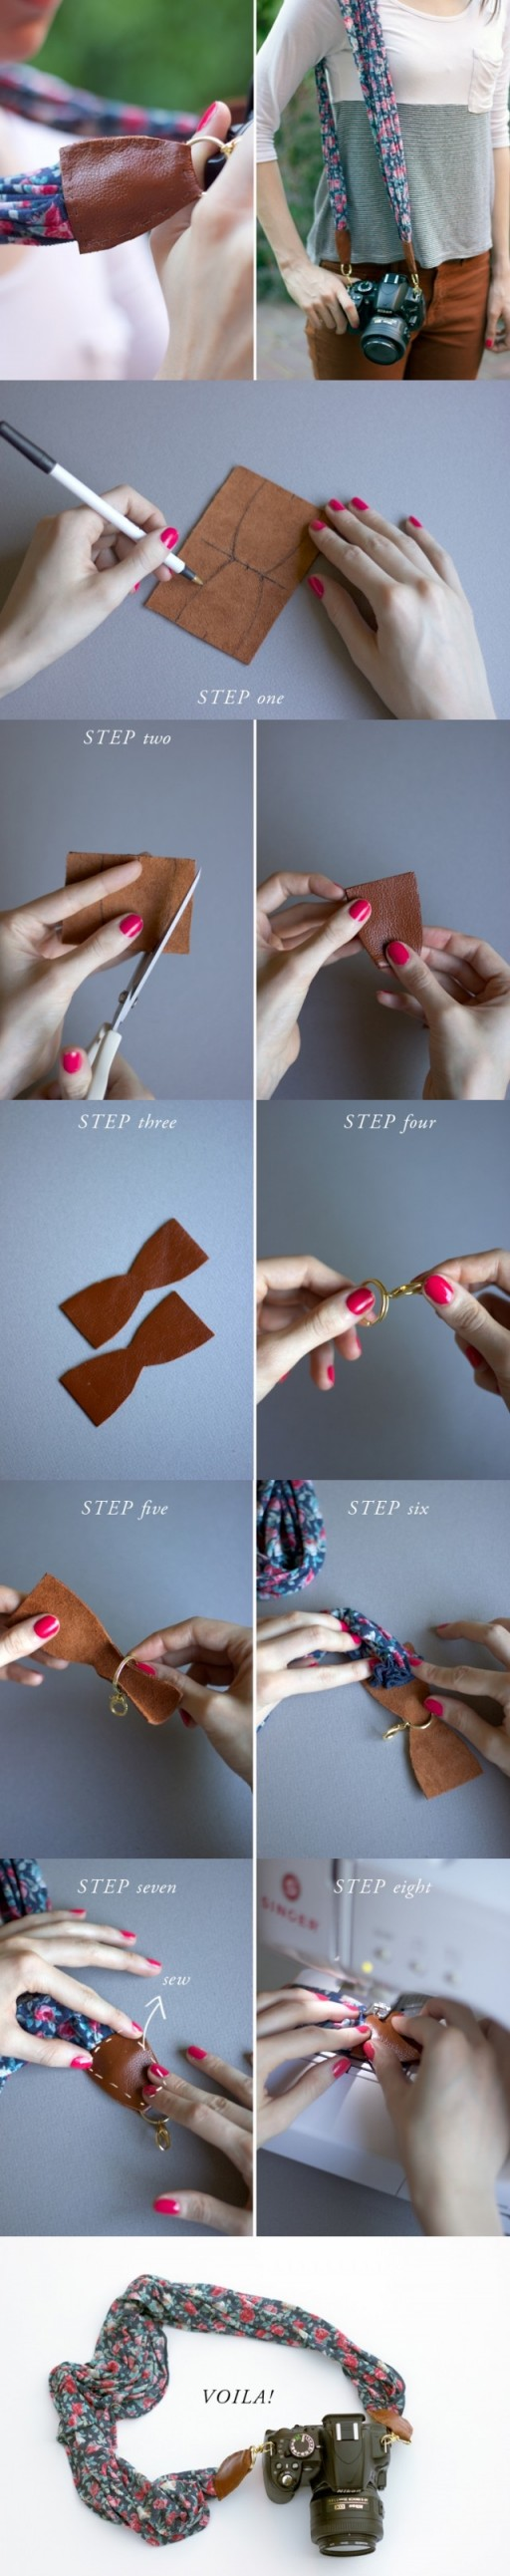 How to make beautiful camera strap from a Laura Ashley scarf step by step DIY tutorial instructions